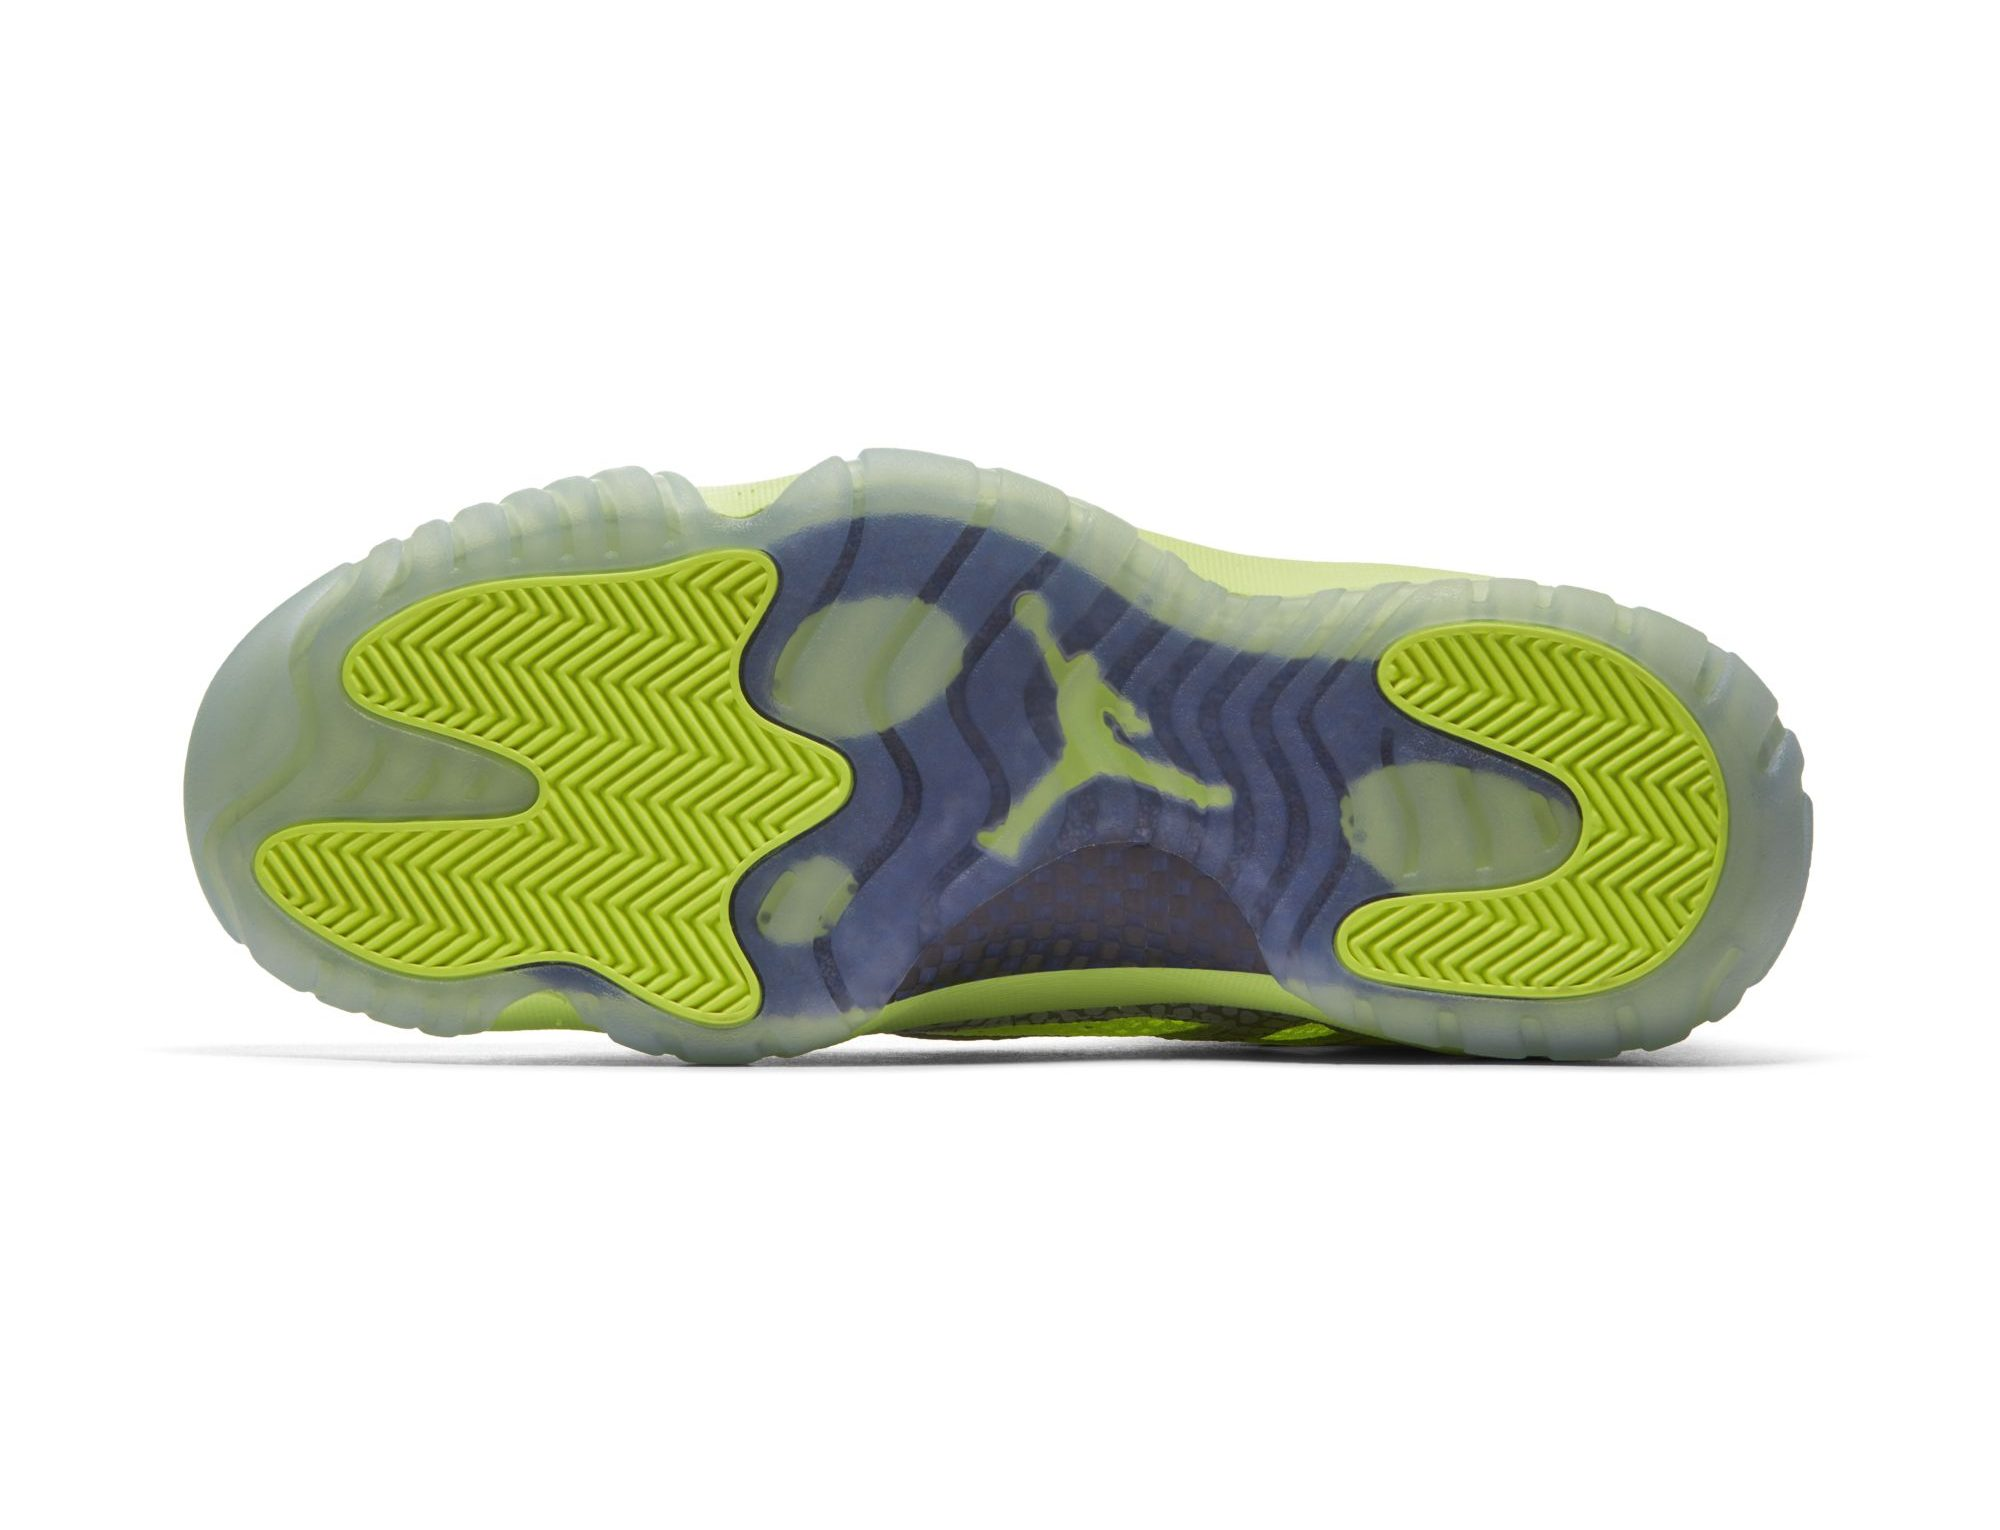 0a3631b0278f Air Jordan 11 Low IE Volt release date 2 - WearTesters